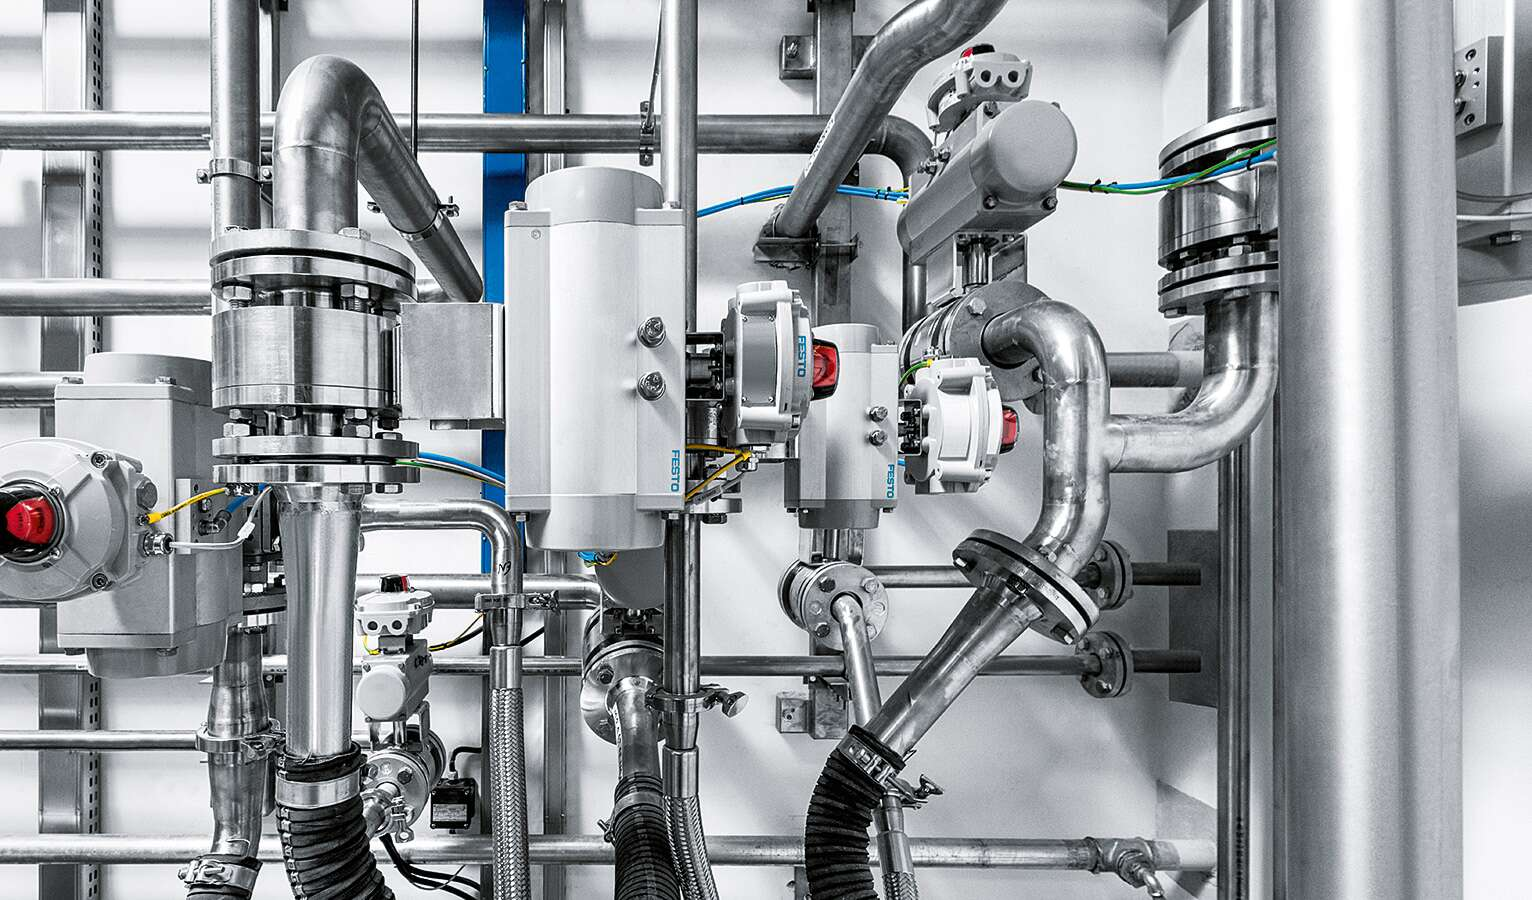 Automated process valves ensure the reliable distribution of substances in the various process steps.